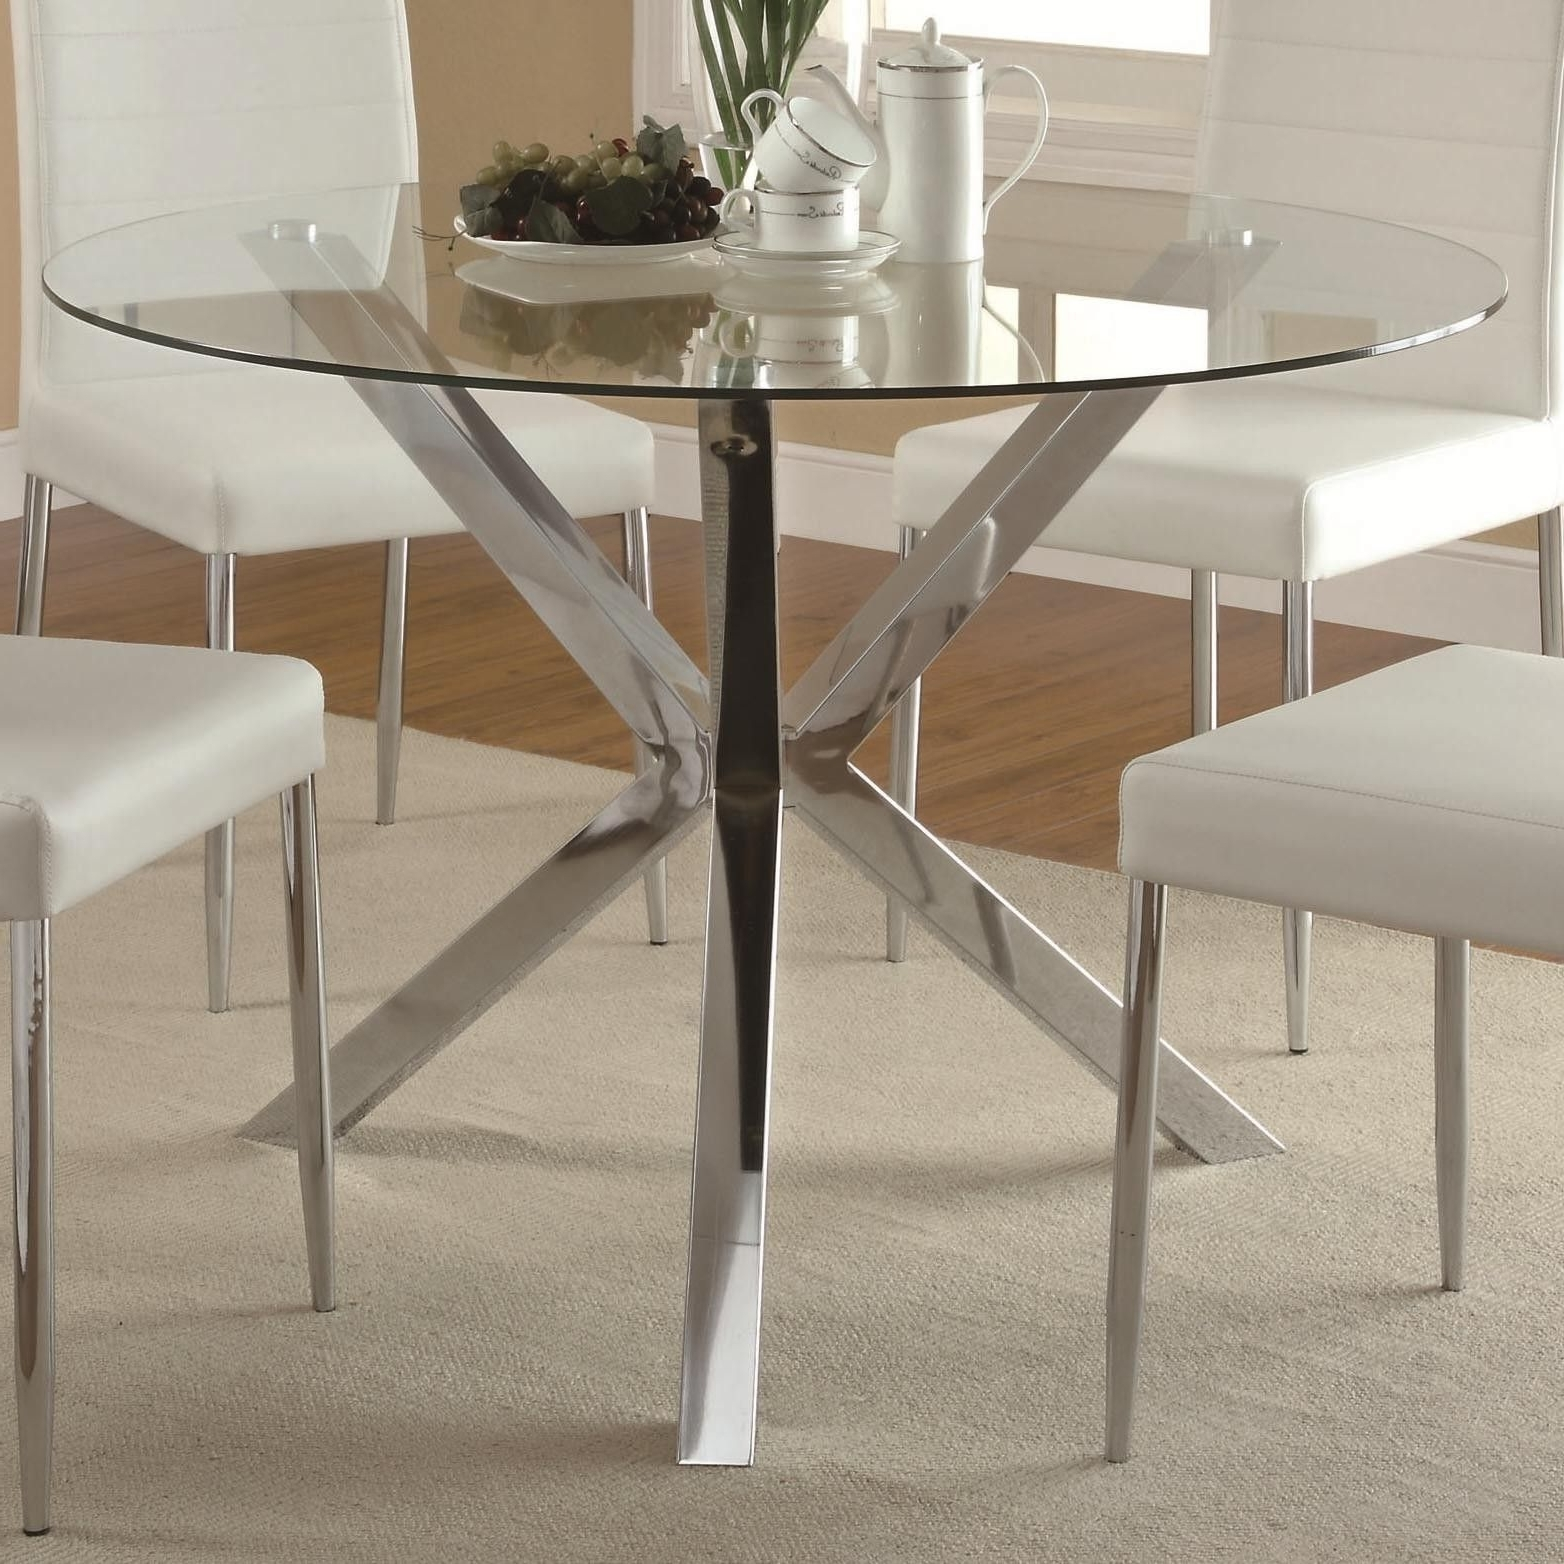 Vance Glass Top Dining Table With Unique Chrome Base 120760 Qlx1 For Newest Lassen Round Dining Tables (View 22 of 25)